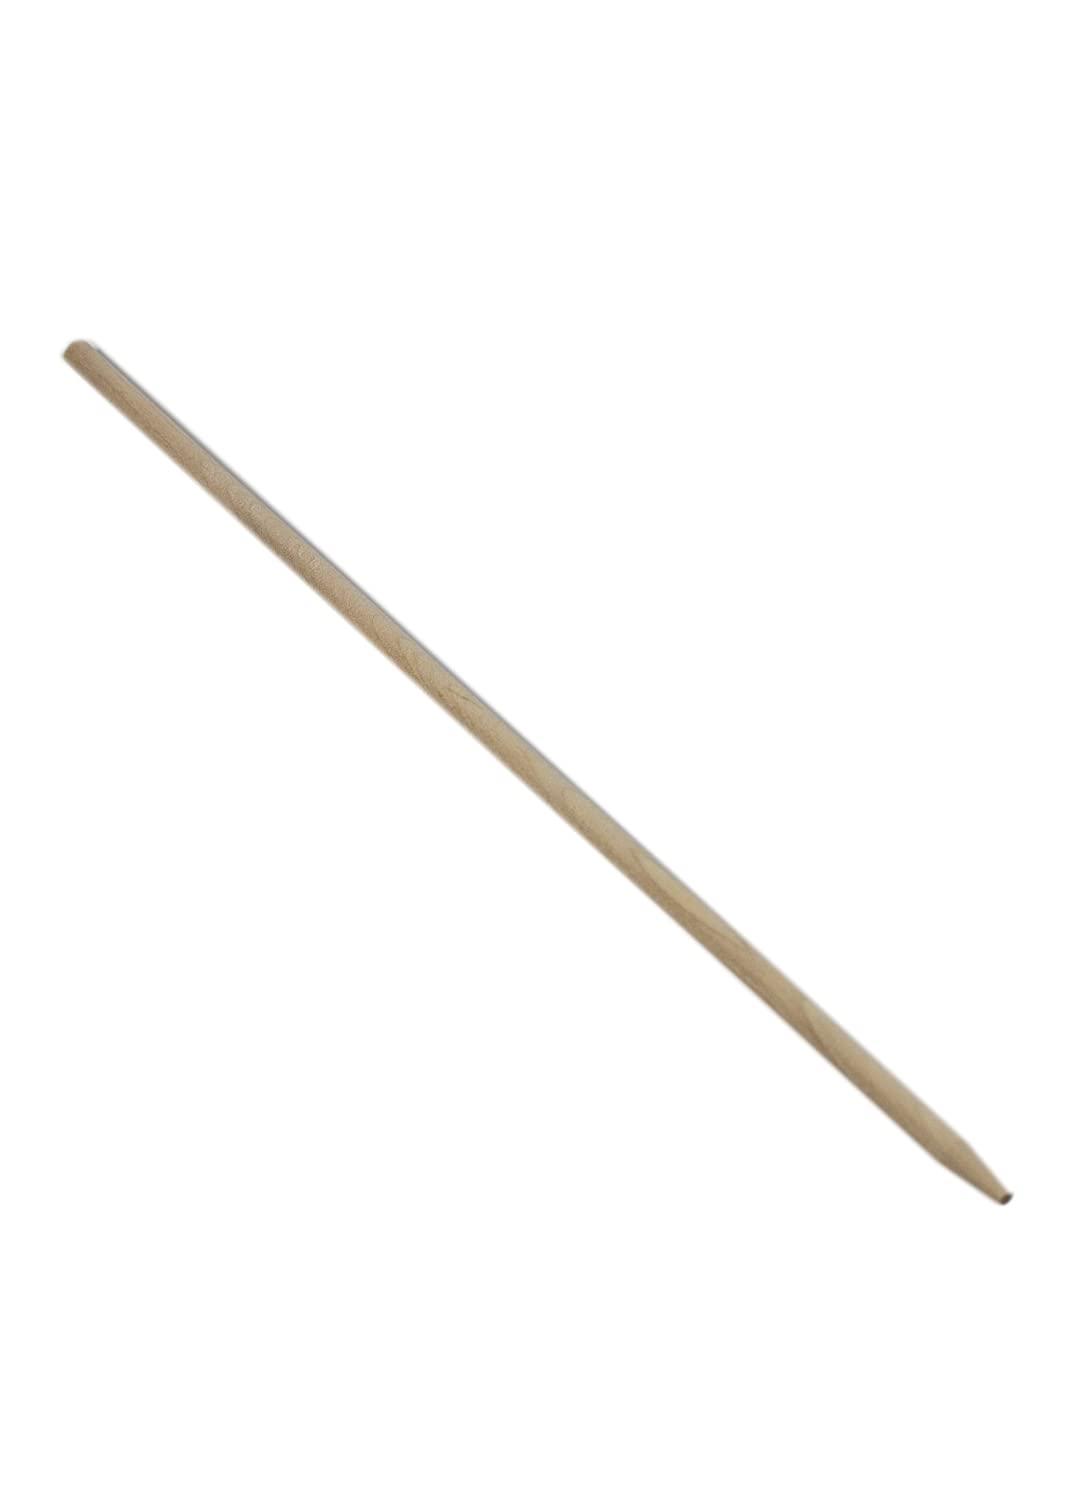 "Perfectware PW WRS55SP-200ct Wooden Semi Pointed Candy Apple/Corn Dog Sticks 5.5"" x 3/16"", Wooden Semi Pointed Candy Apple (Pack of 200)"